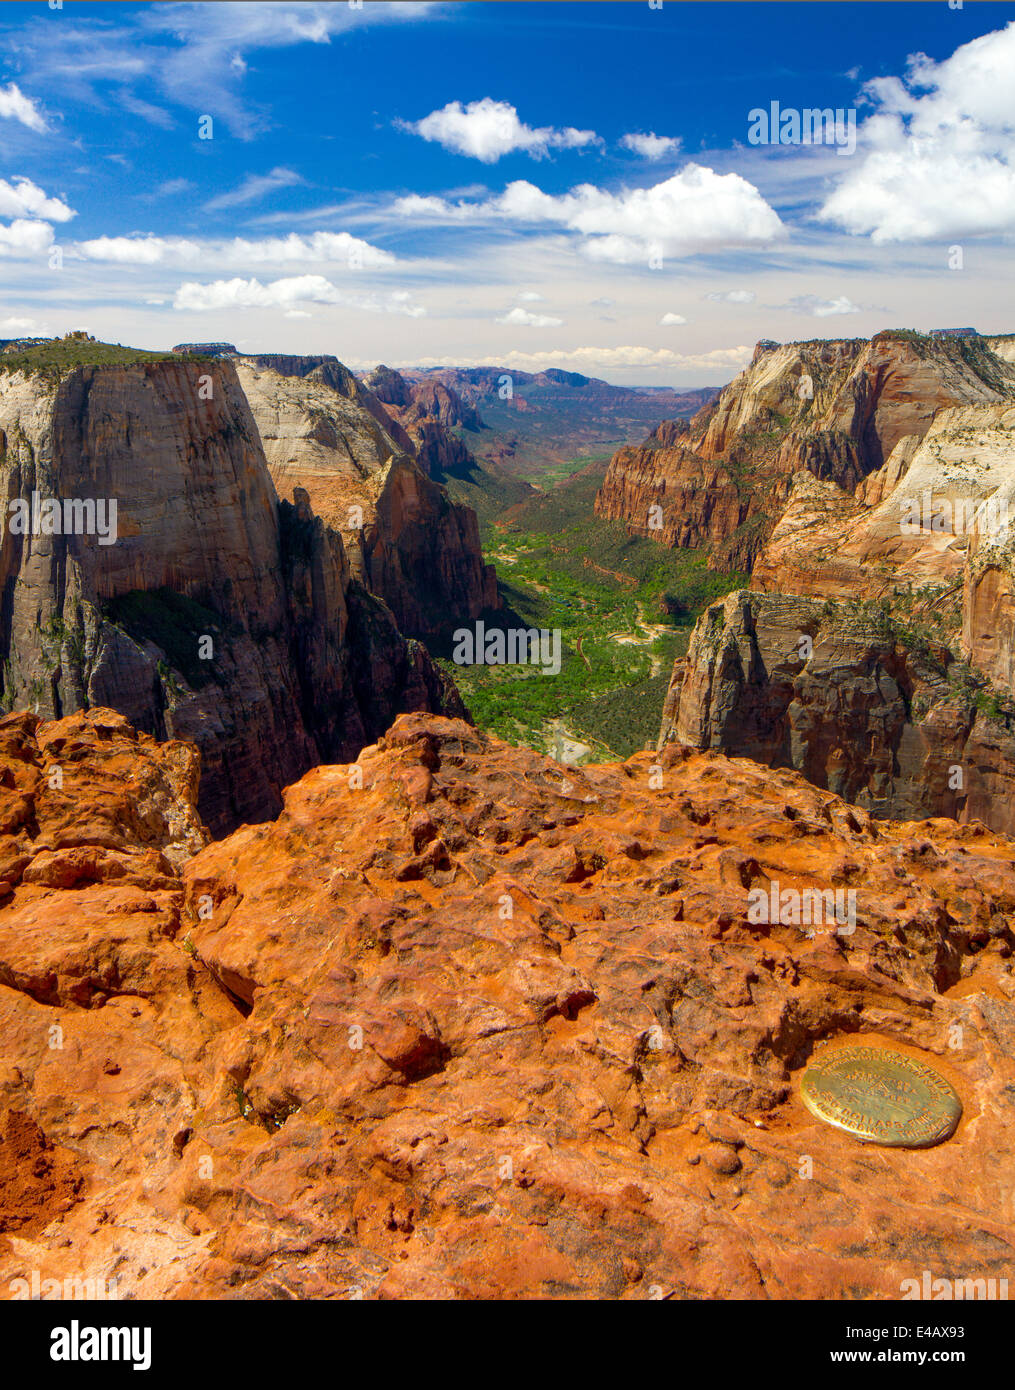 View from Observation Point, Zion National Park, Utah - Stock Image